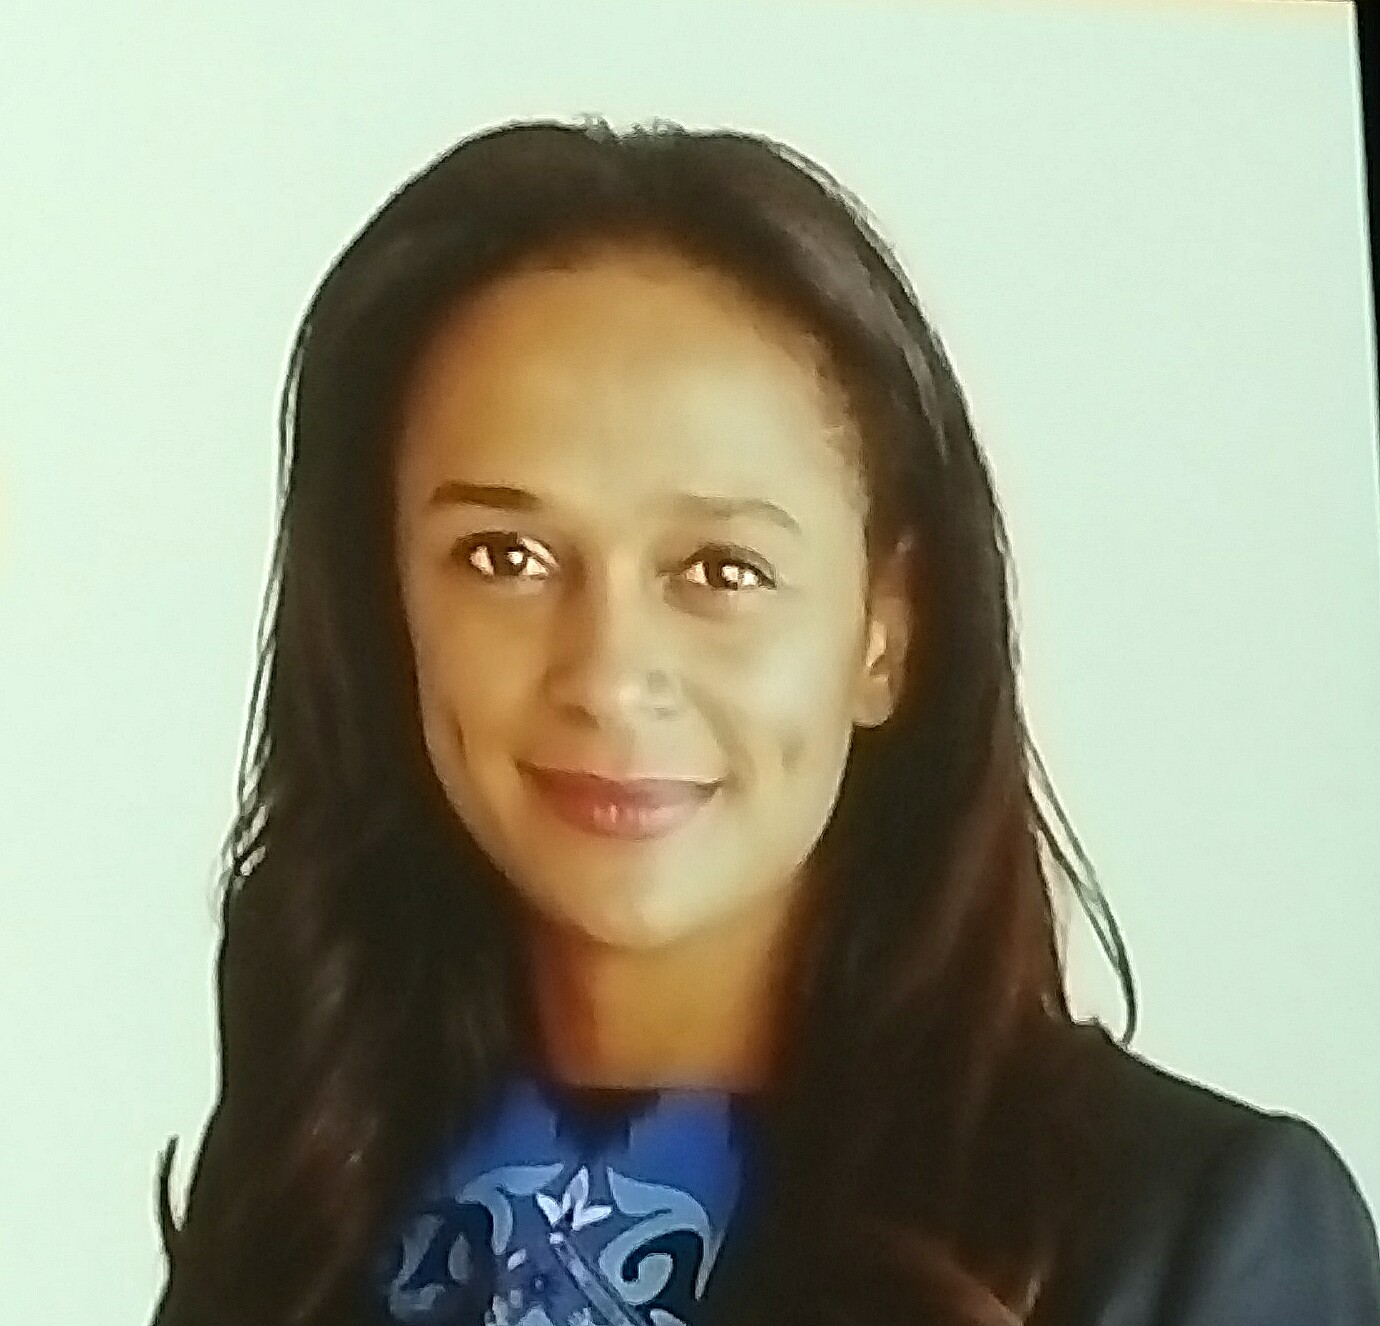 Isabel dos Santos vows to modernise Sonangol with the support of President Laurenco